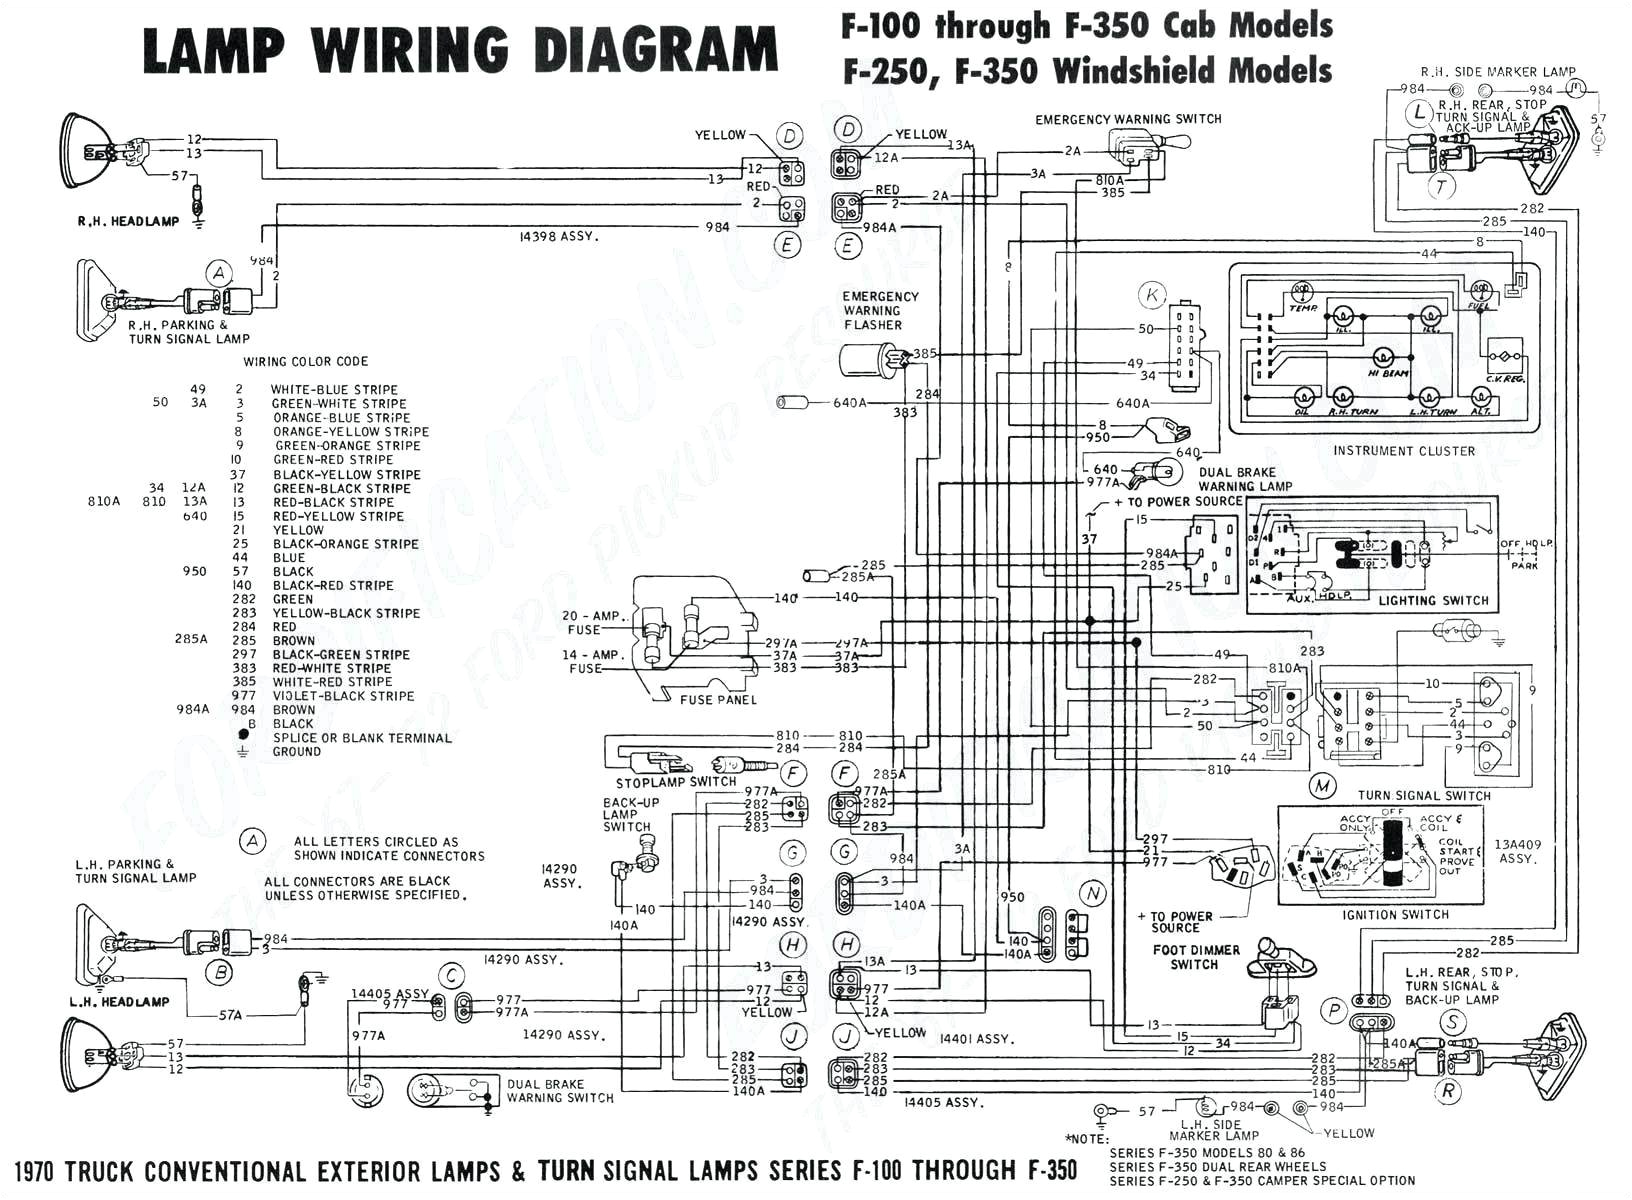 2001 Ford Taurus Headlight Wiring Diagram - Wiring Diagrams Library20.f1.kreidlermueller.de